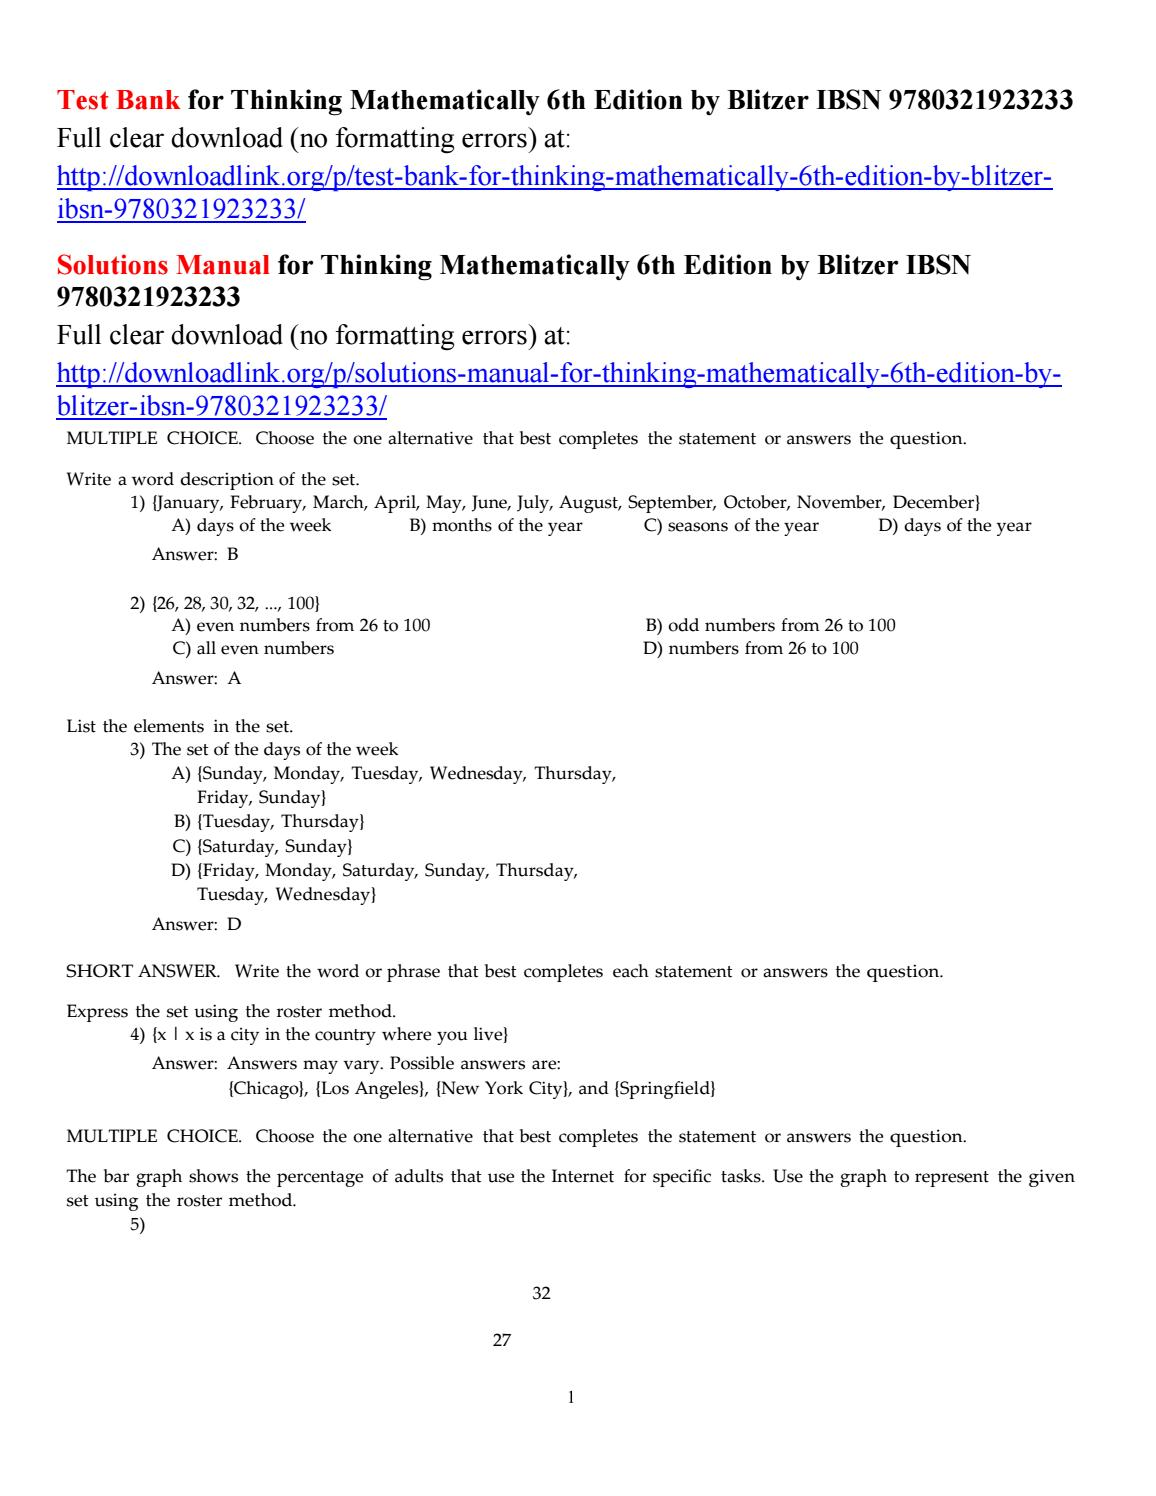 Test bank for thinking mathematically 6th edition by blitzer ibsn  9780321923233 by Martinuuu - issuu